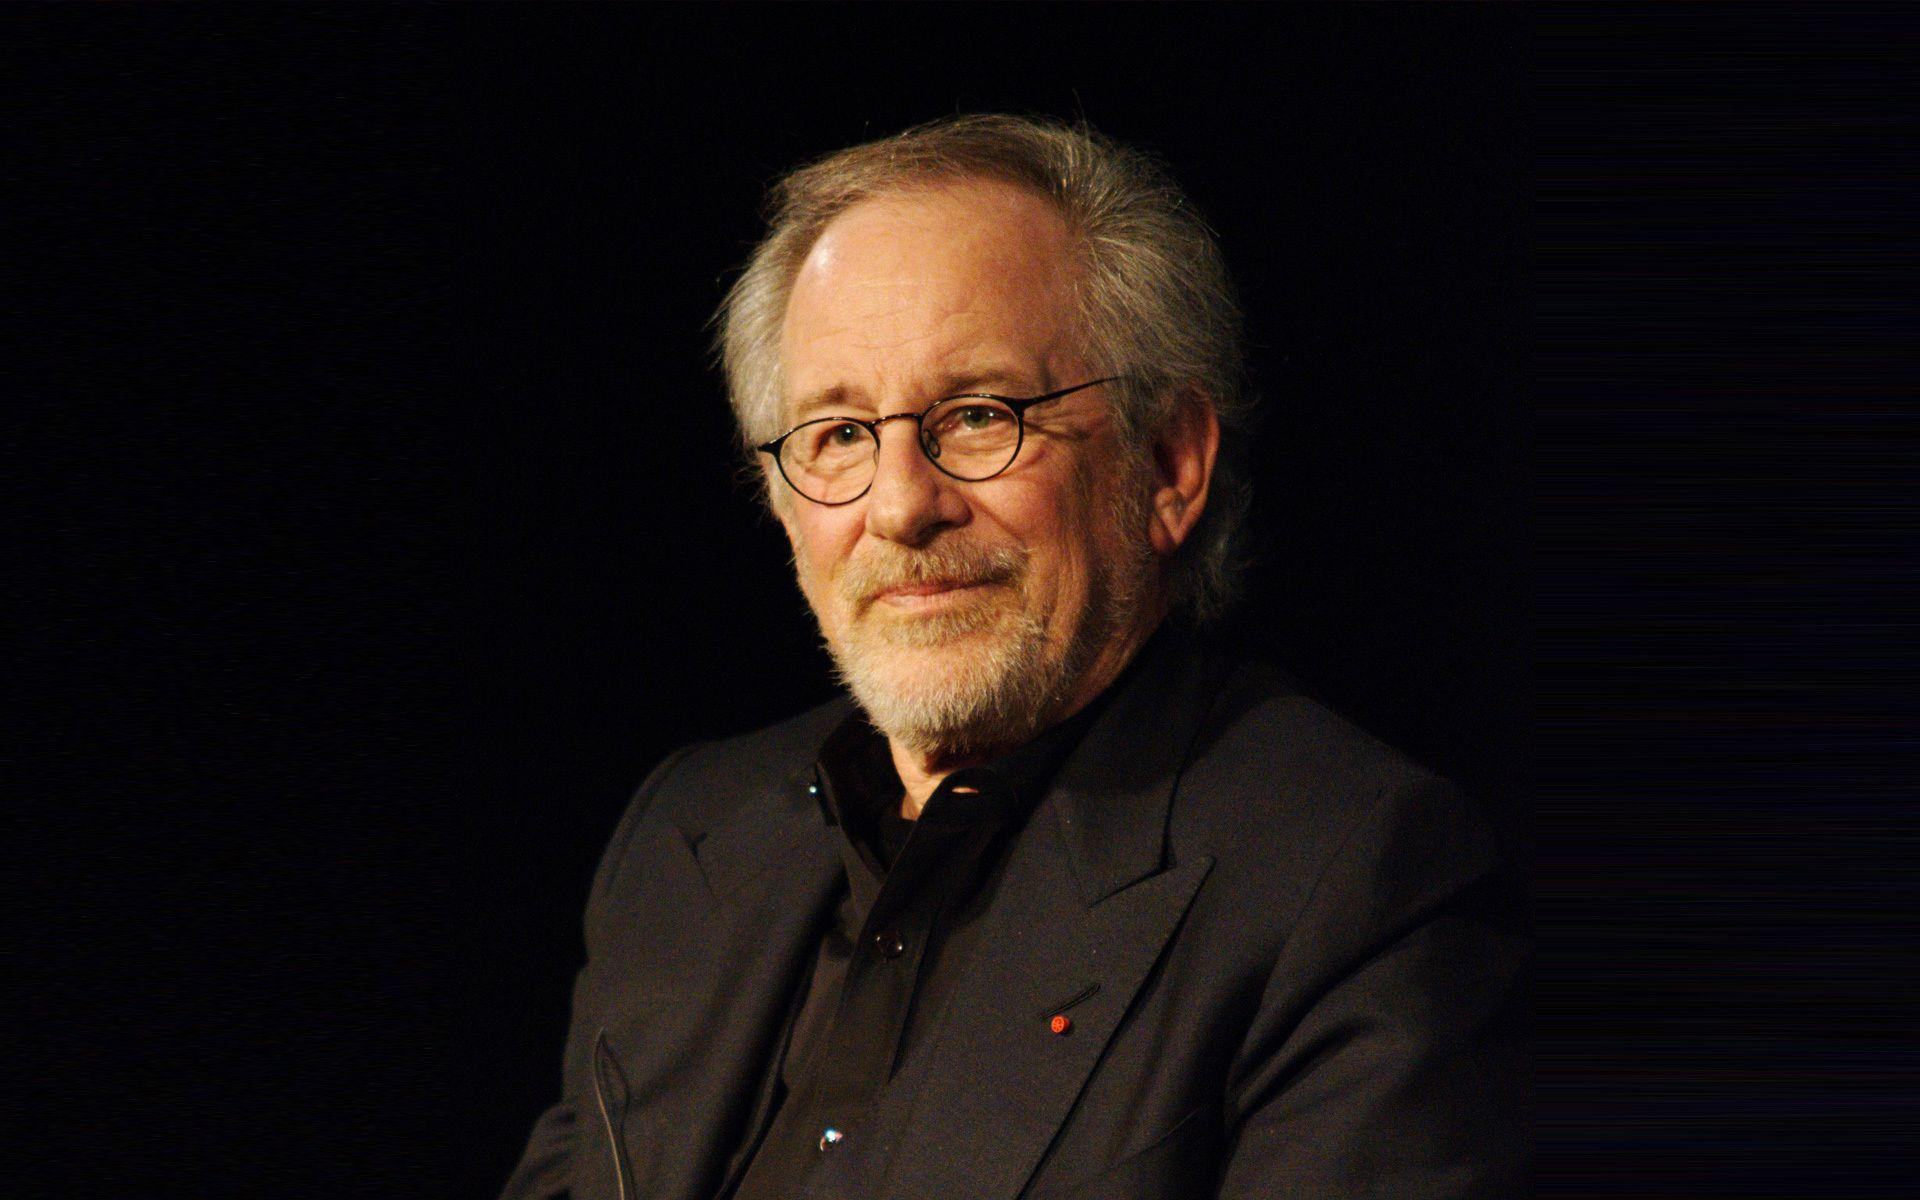 Wallpapers steven spielberg, face, glasses, film director